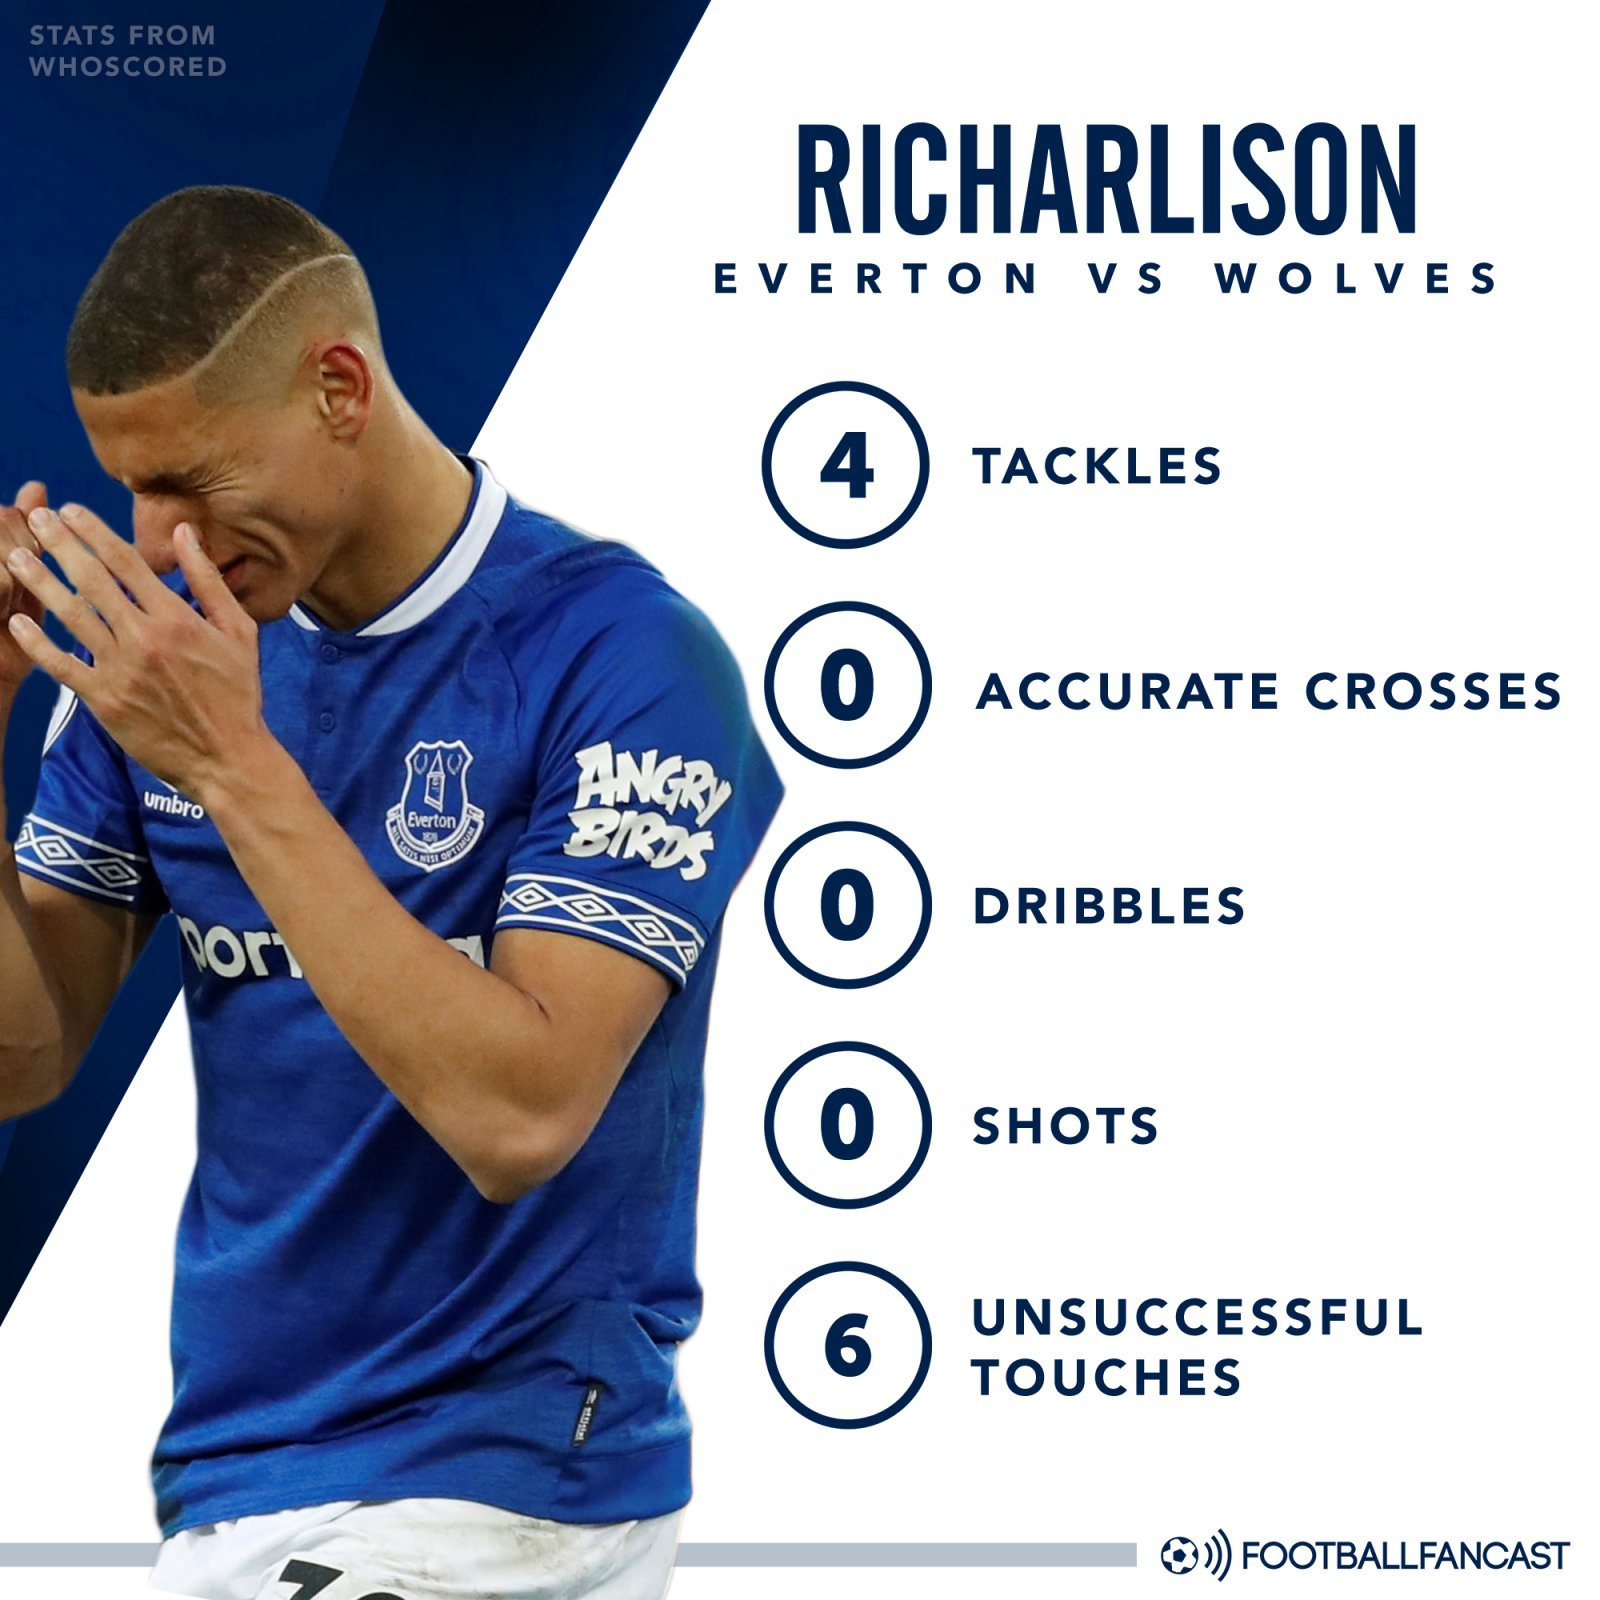 Richarlison stats vs Wolves - 0 Dribbles, 6 Unsuccessful Touches: Silva favourite was bullied out of the game on Saturday